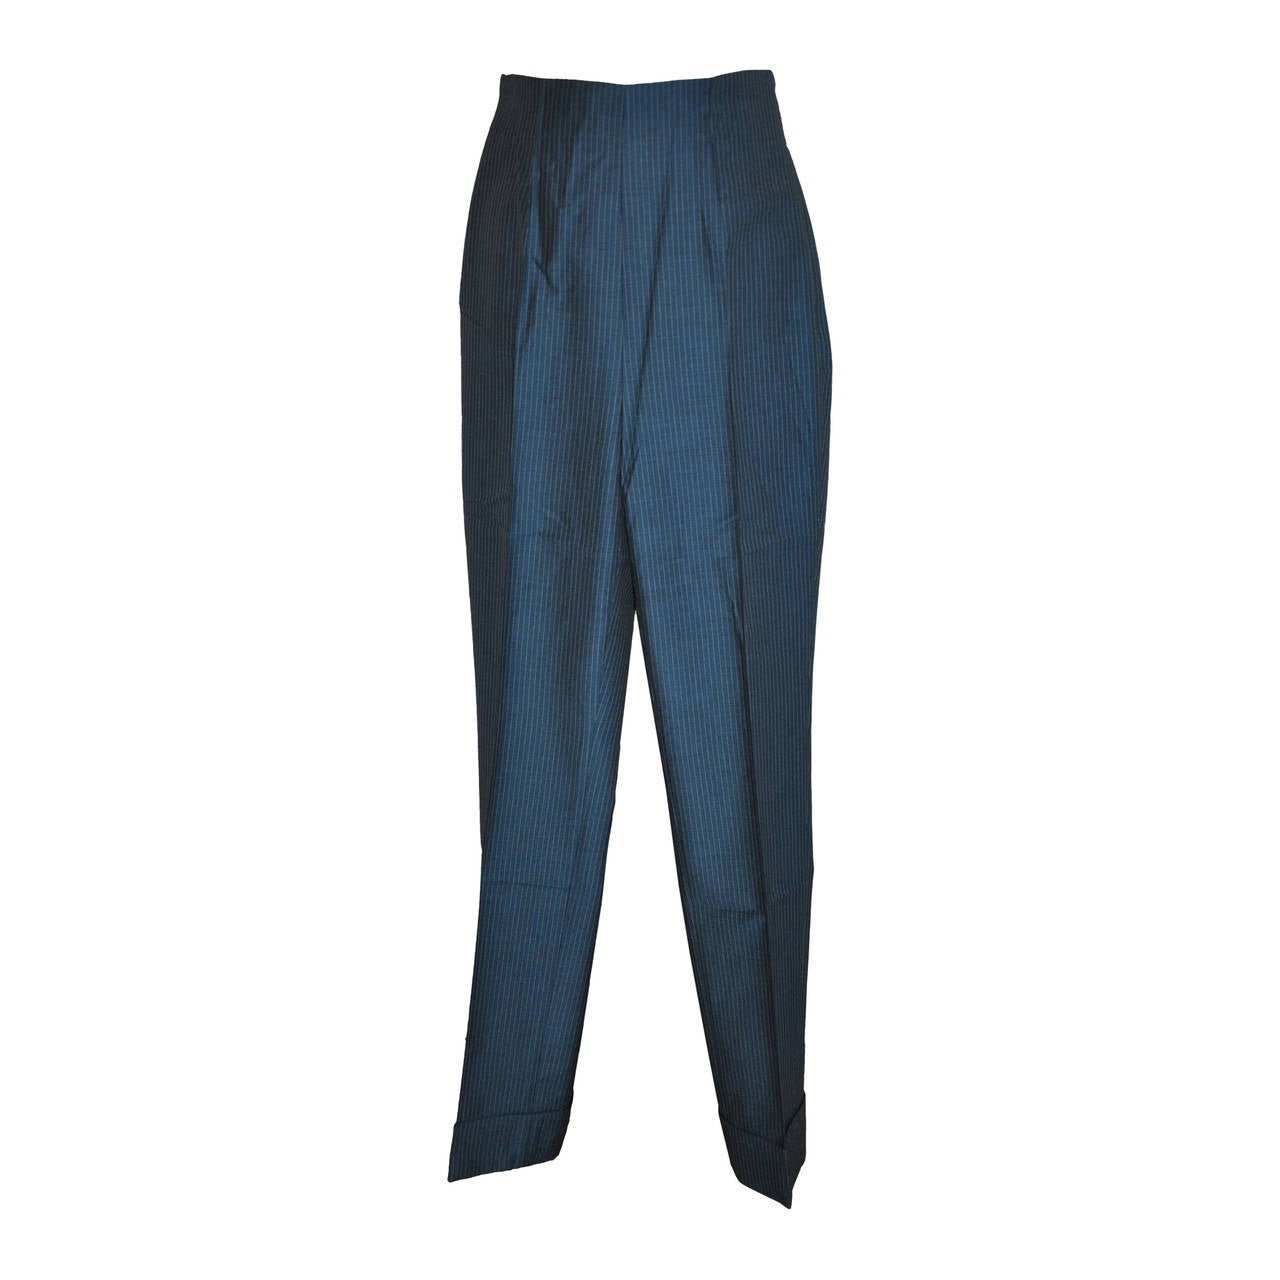 Banana Republic offers a collection of pinstripe pants for an elegant and sophisticated style. Choose from a variety of pinstripe pants made from fine fabrics that are perfectly crafted for a flattering look.